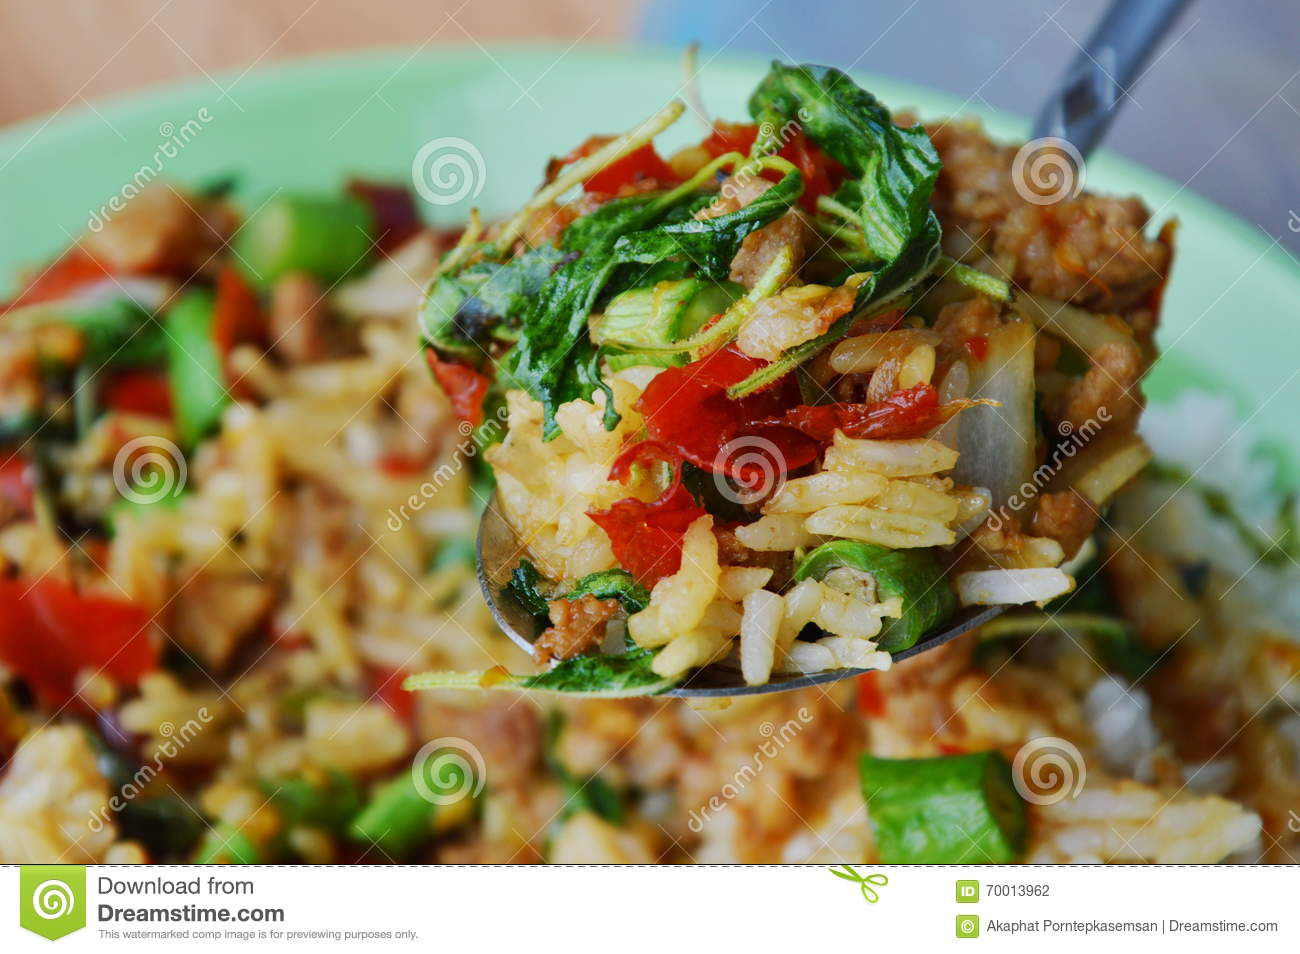 Stir-fried spicy minced pork with basil leaf and rice on spoon